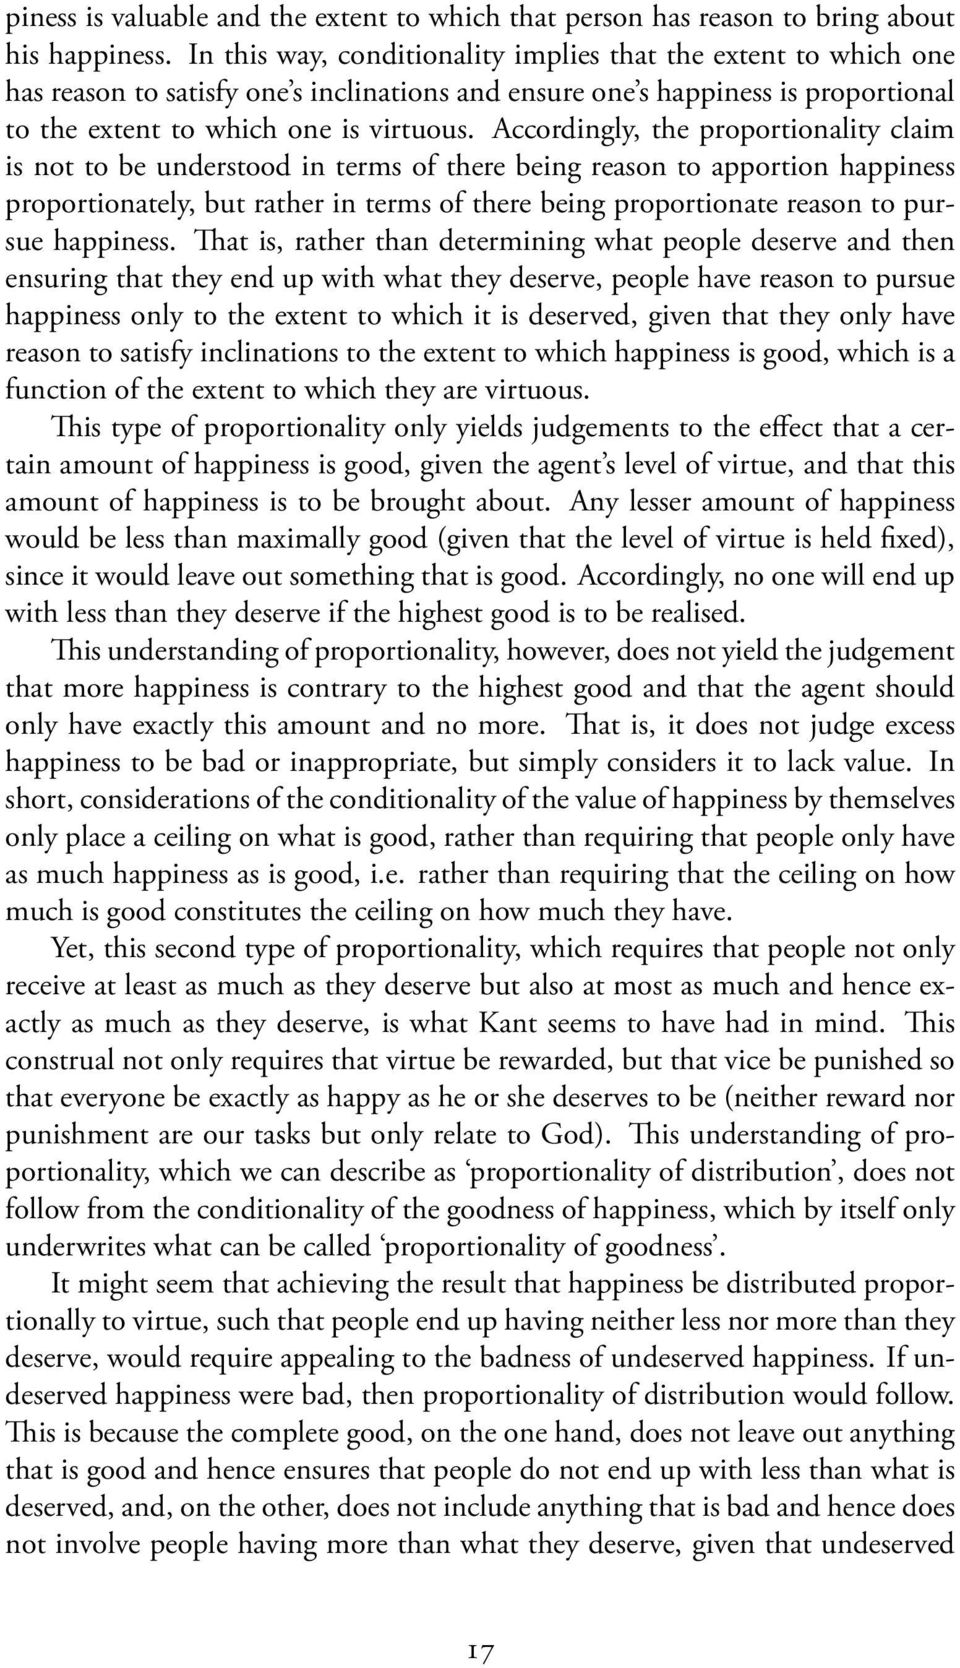 Accordingly, the proportionality claim is not to be understood in terms of there being reason to apportion happiness proportionately, but rather in terms of there being proportionate reason to pursue